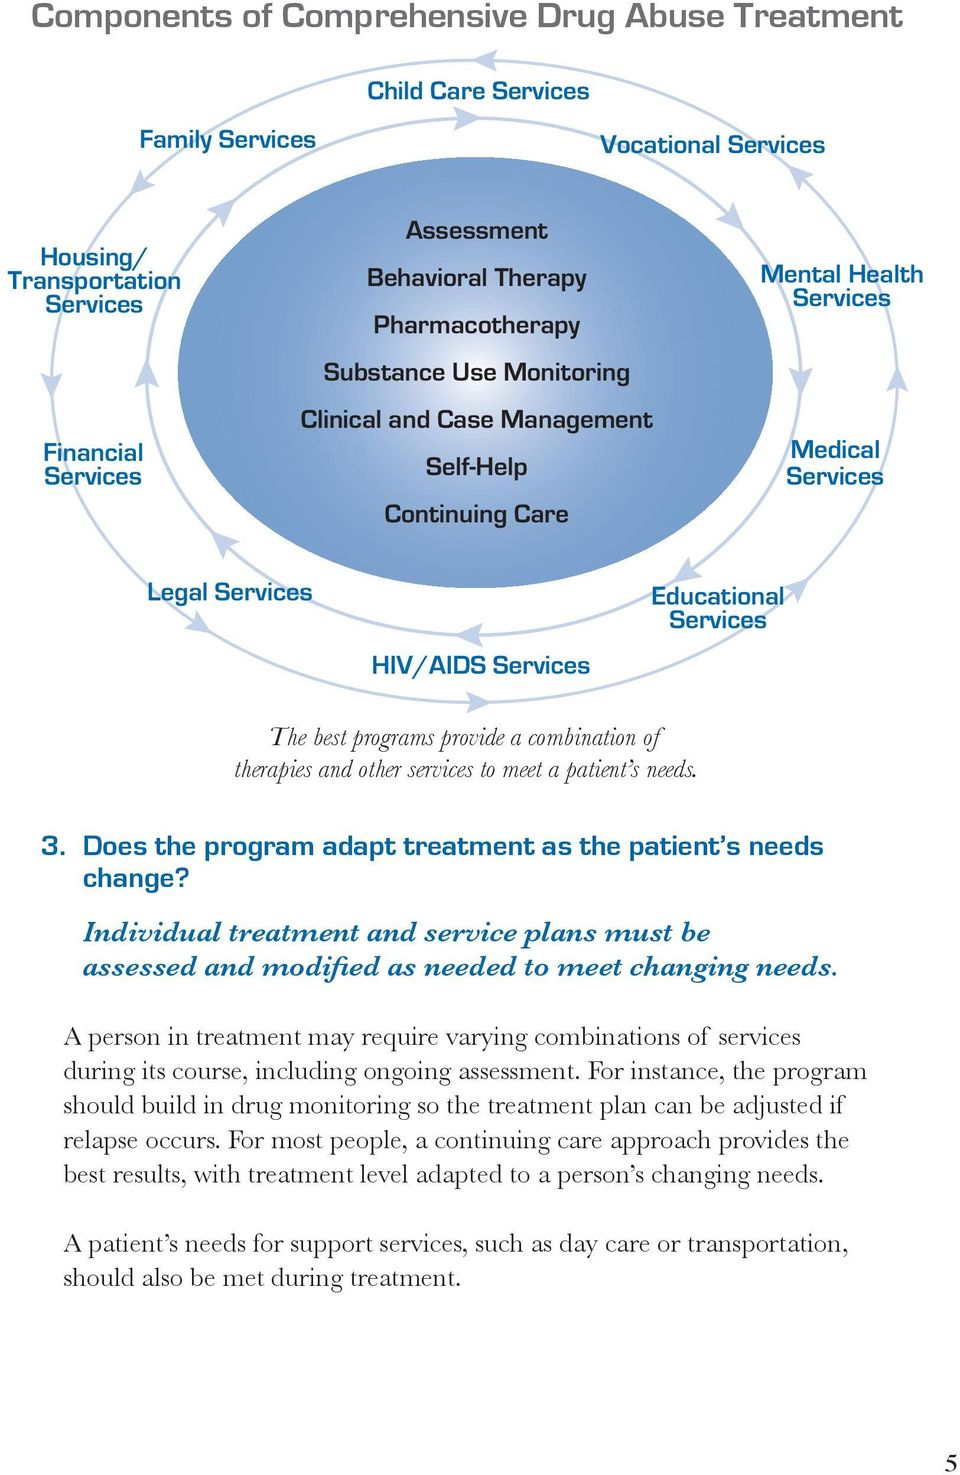 Does the program adapt treatment as the patient s needs change? Individual treatment and service plans must be assessed and modified as needed to meet changing needs.